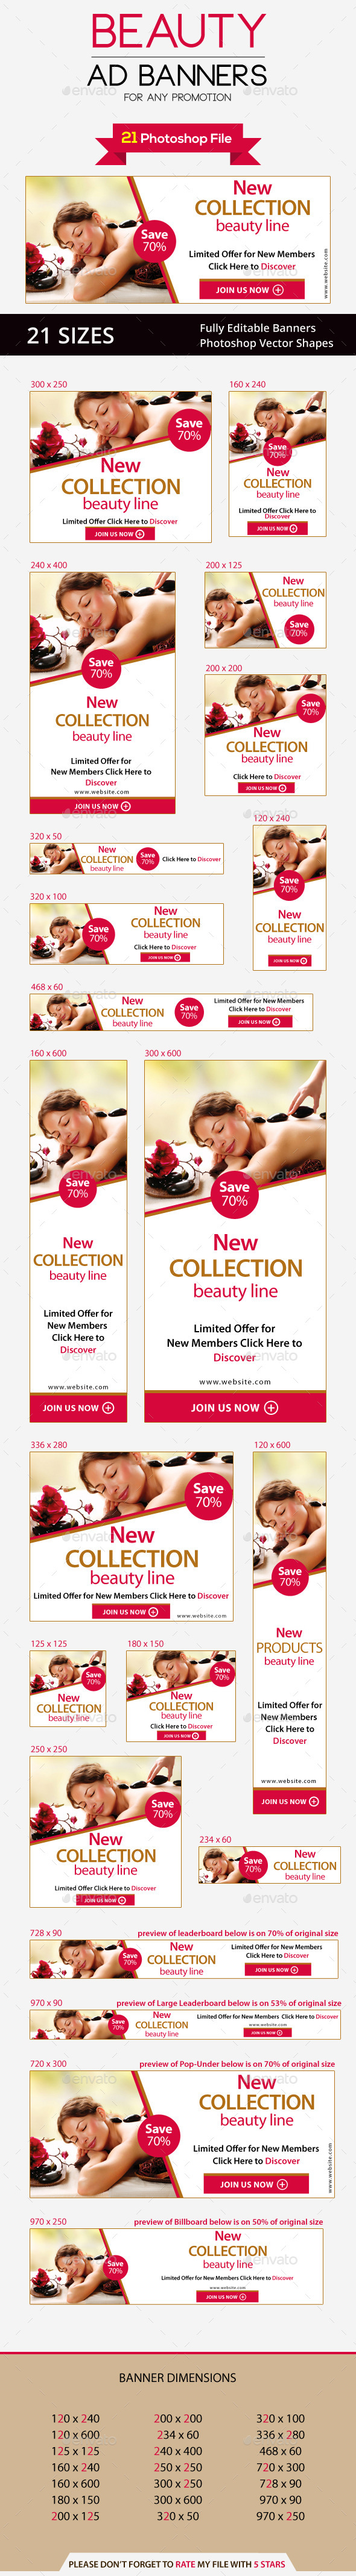 GraphicRiver Beauty Ad Banners 9813534